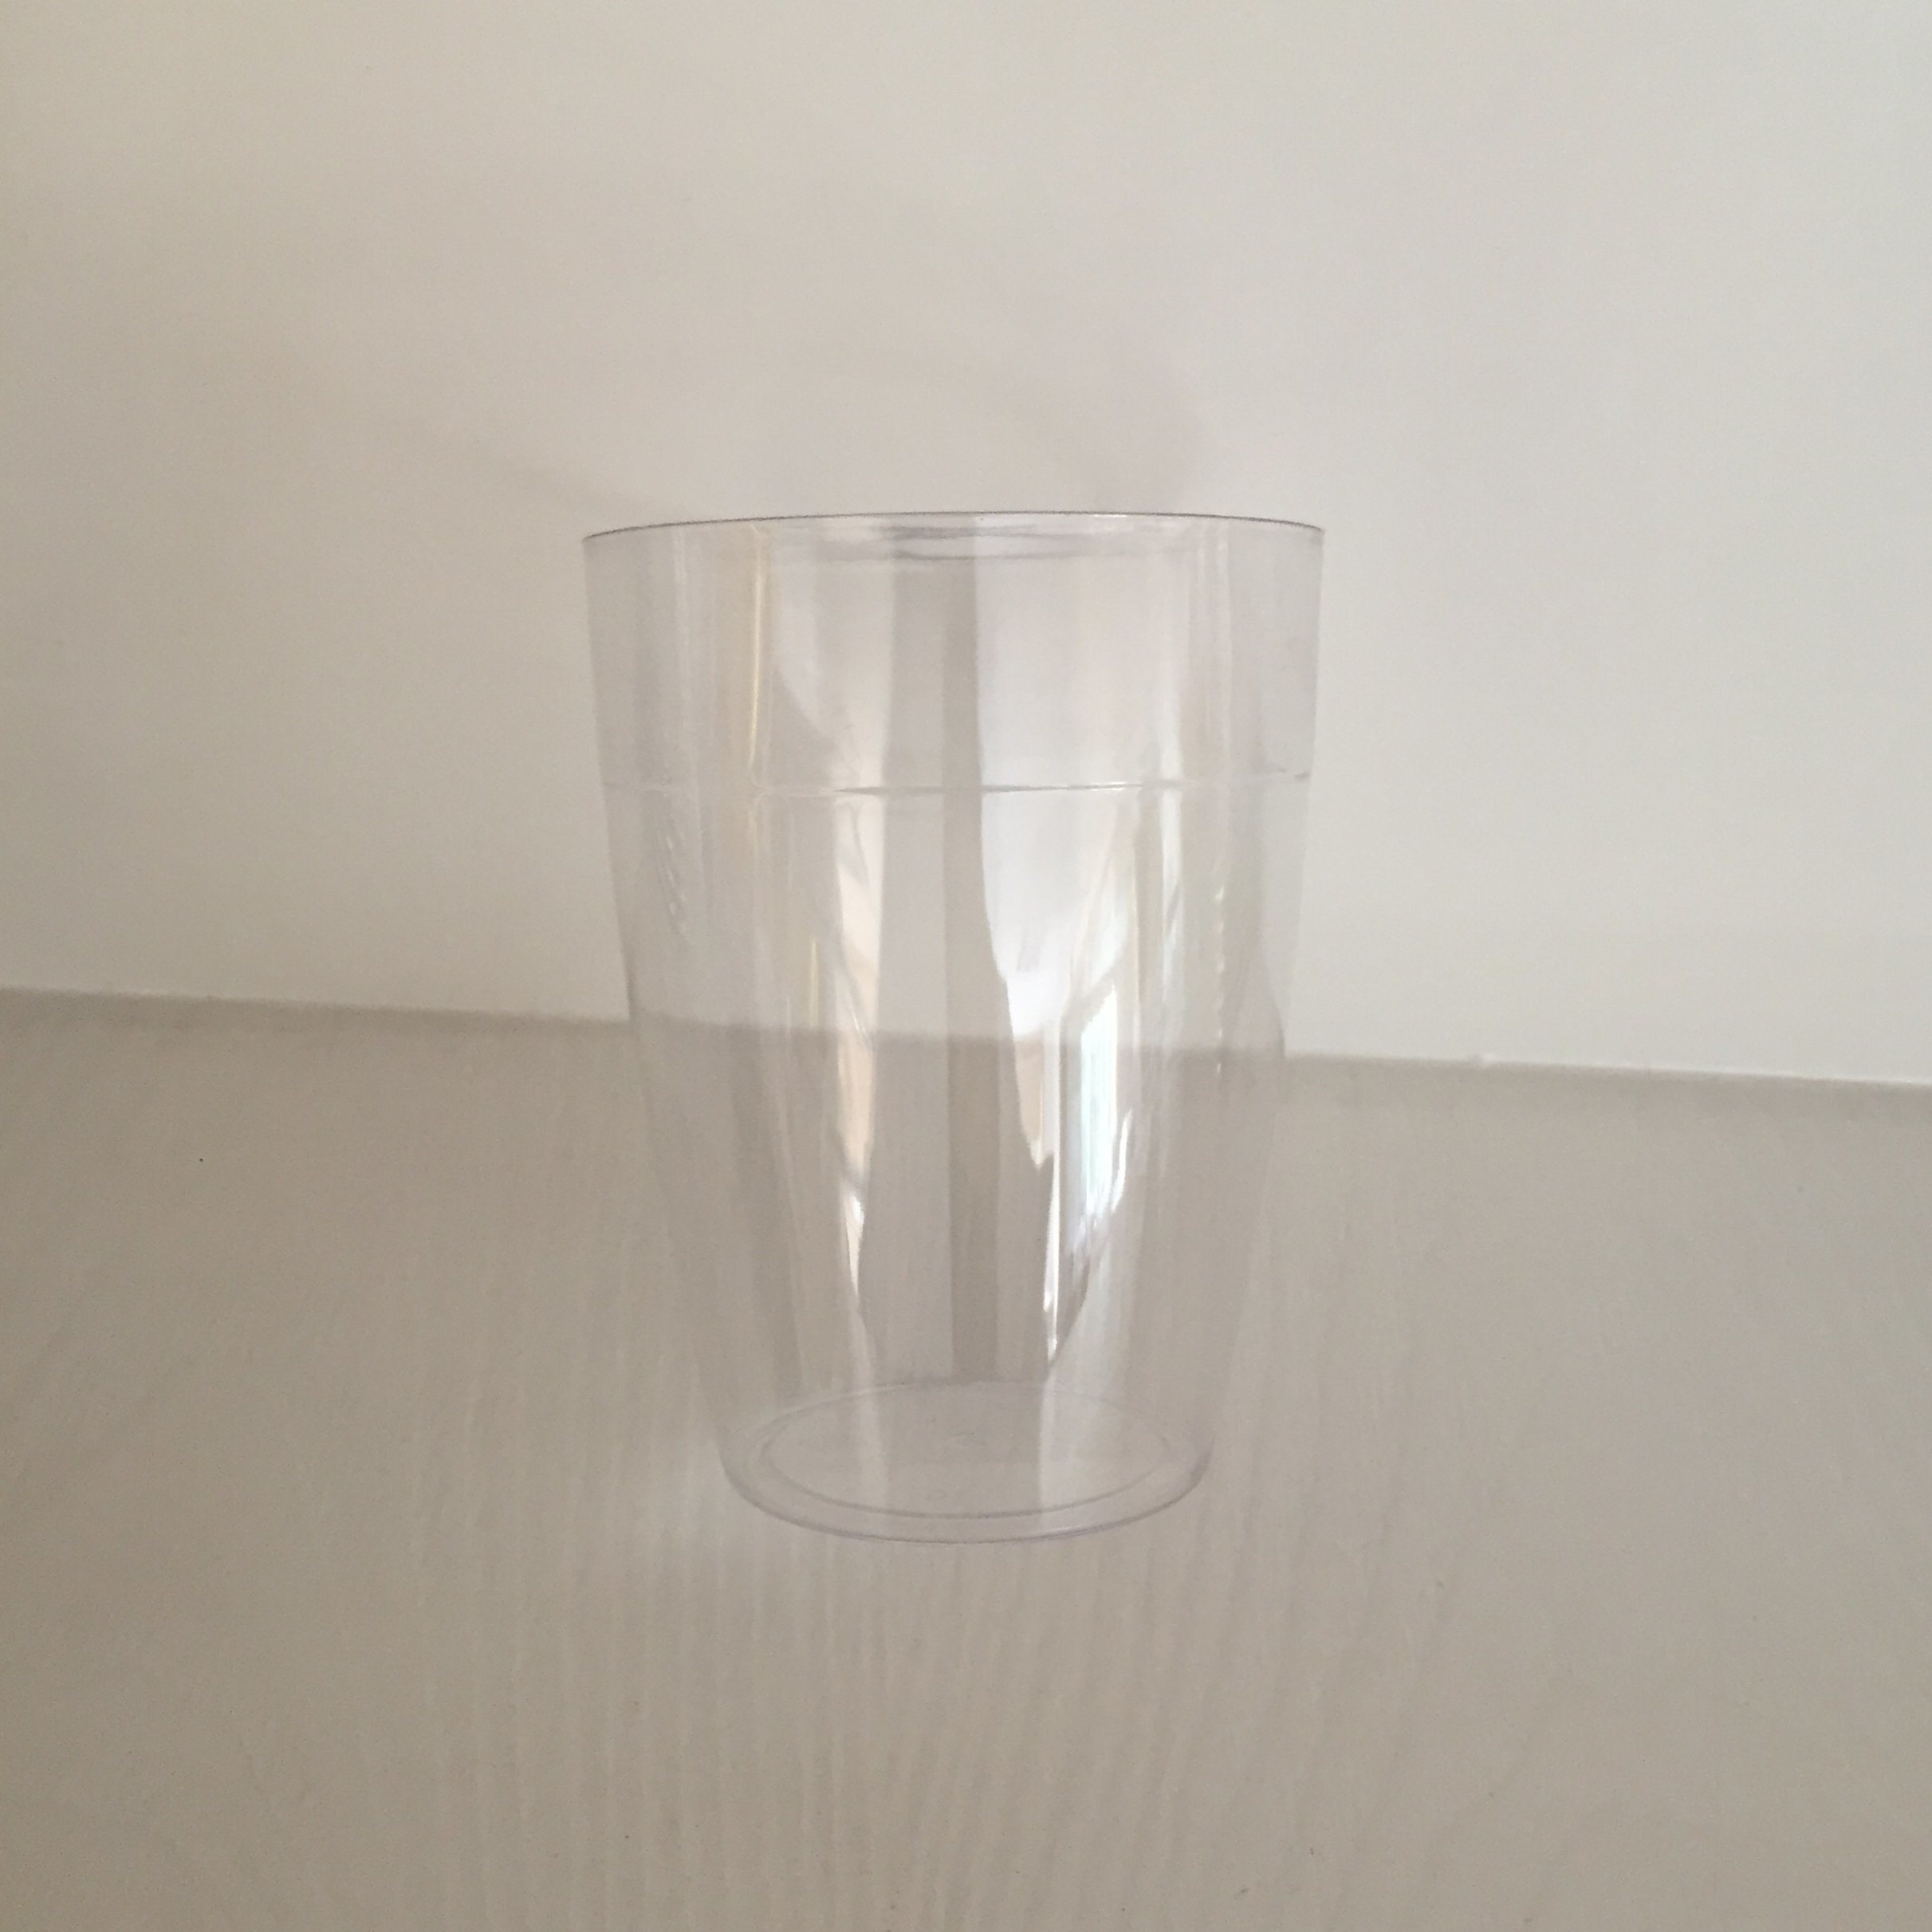 Plastic Cup, Glass, Mug, Tableware, PS, Disposable, Colorful, GB-12, Clear